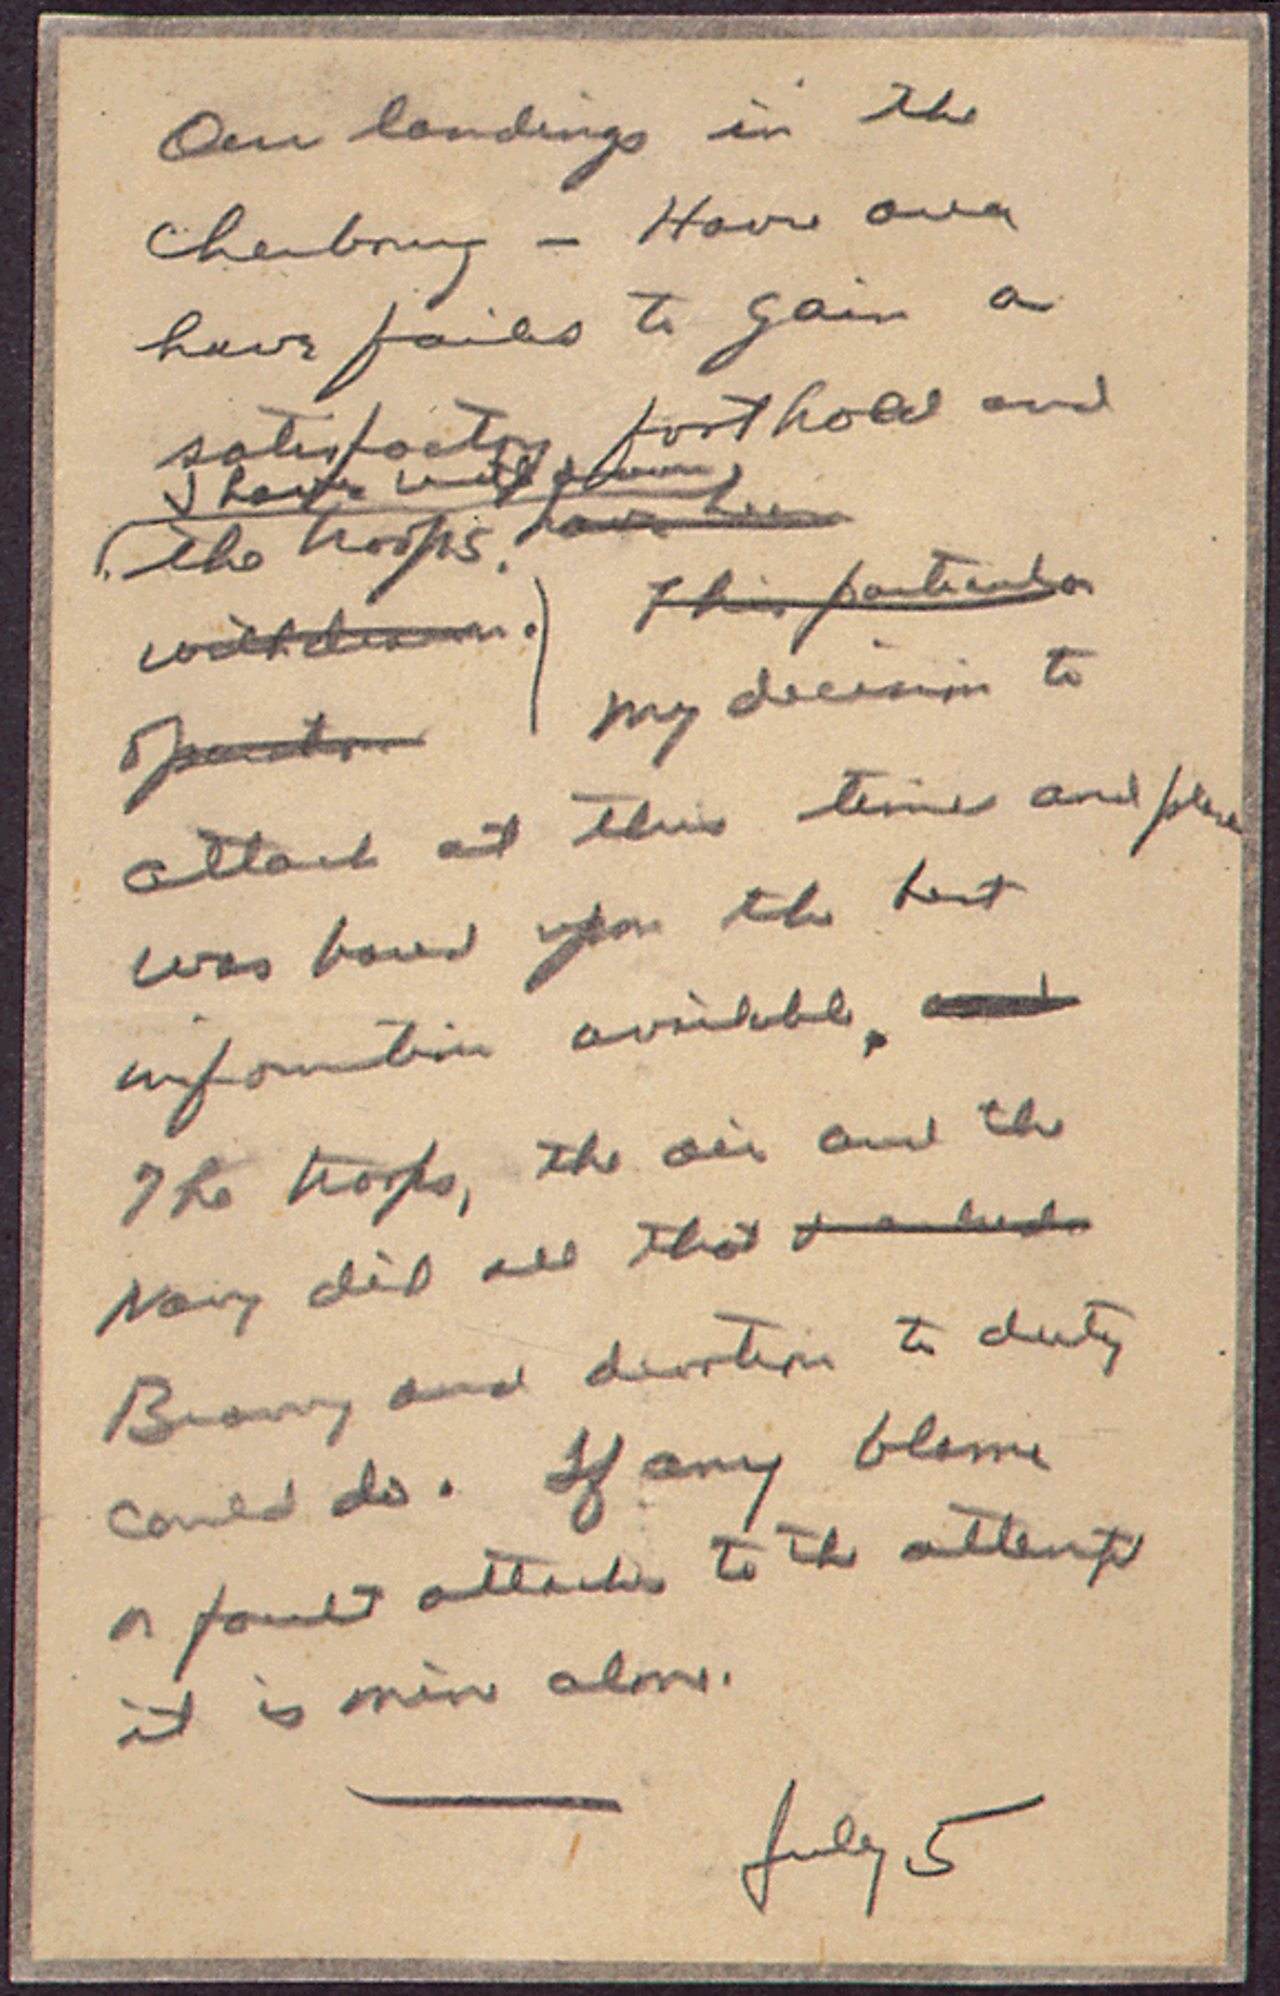 Eisenhower drafted  statement on 5 June (he incorrectly dated it 5 July), announcing the failure of D-Day.